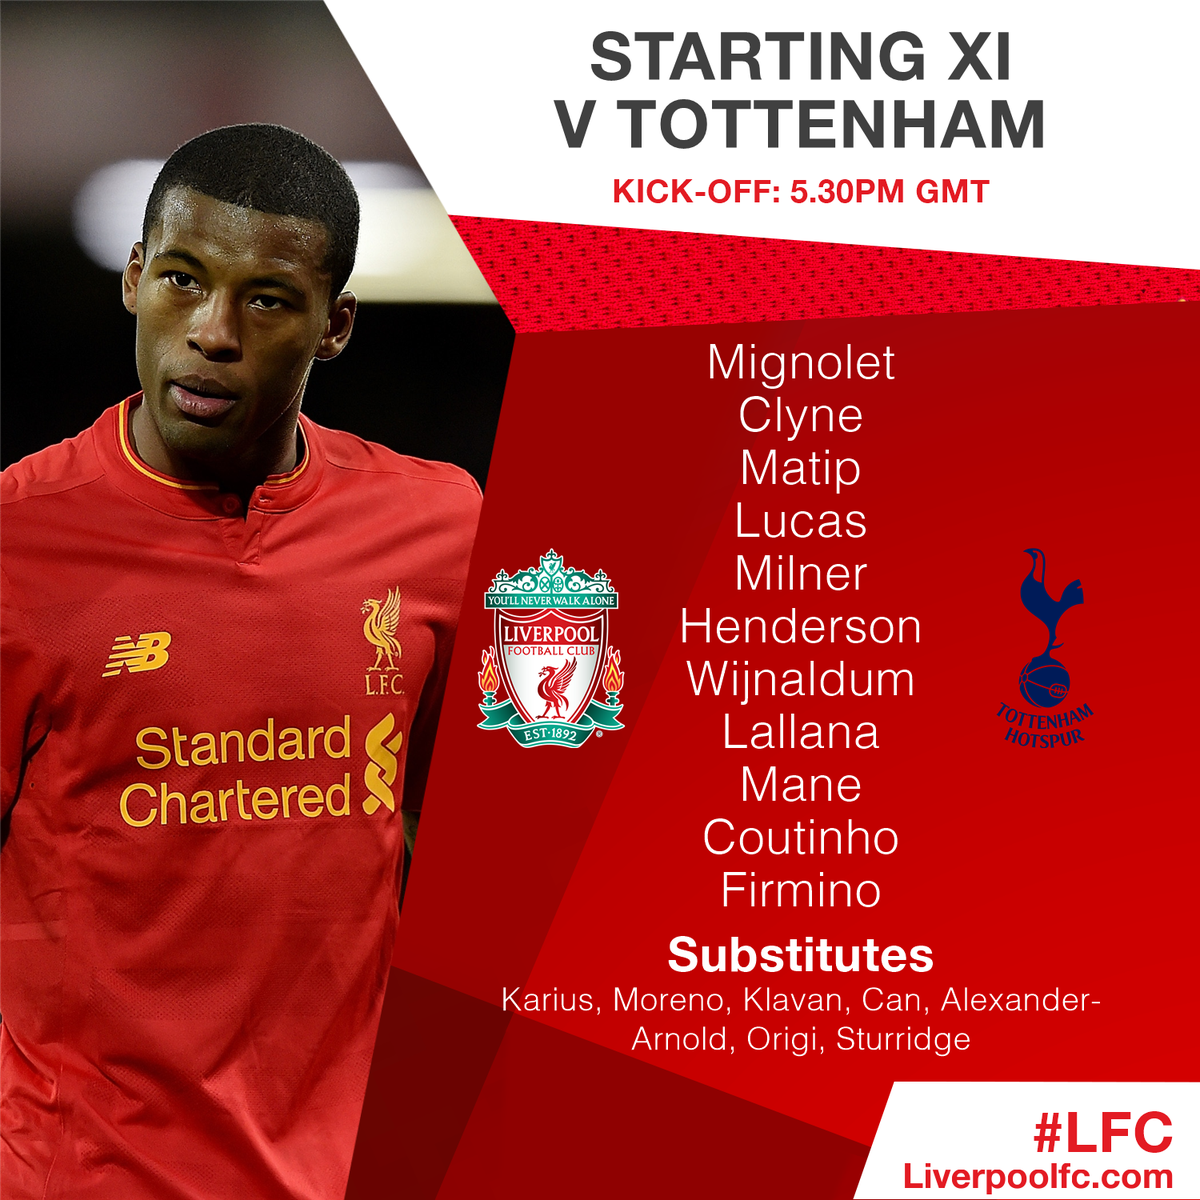 Barcelona 3 0 Liverpool In Game And Post Match Discussion: Liverpool 2-0 Tottenham Hotspur: In Game And Post Match